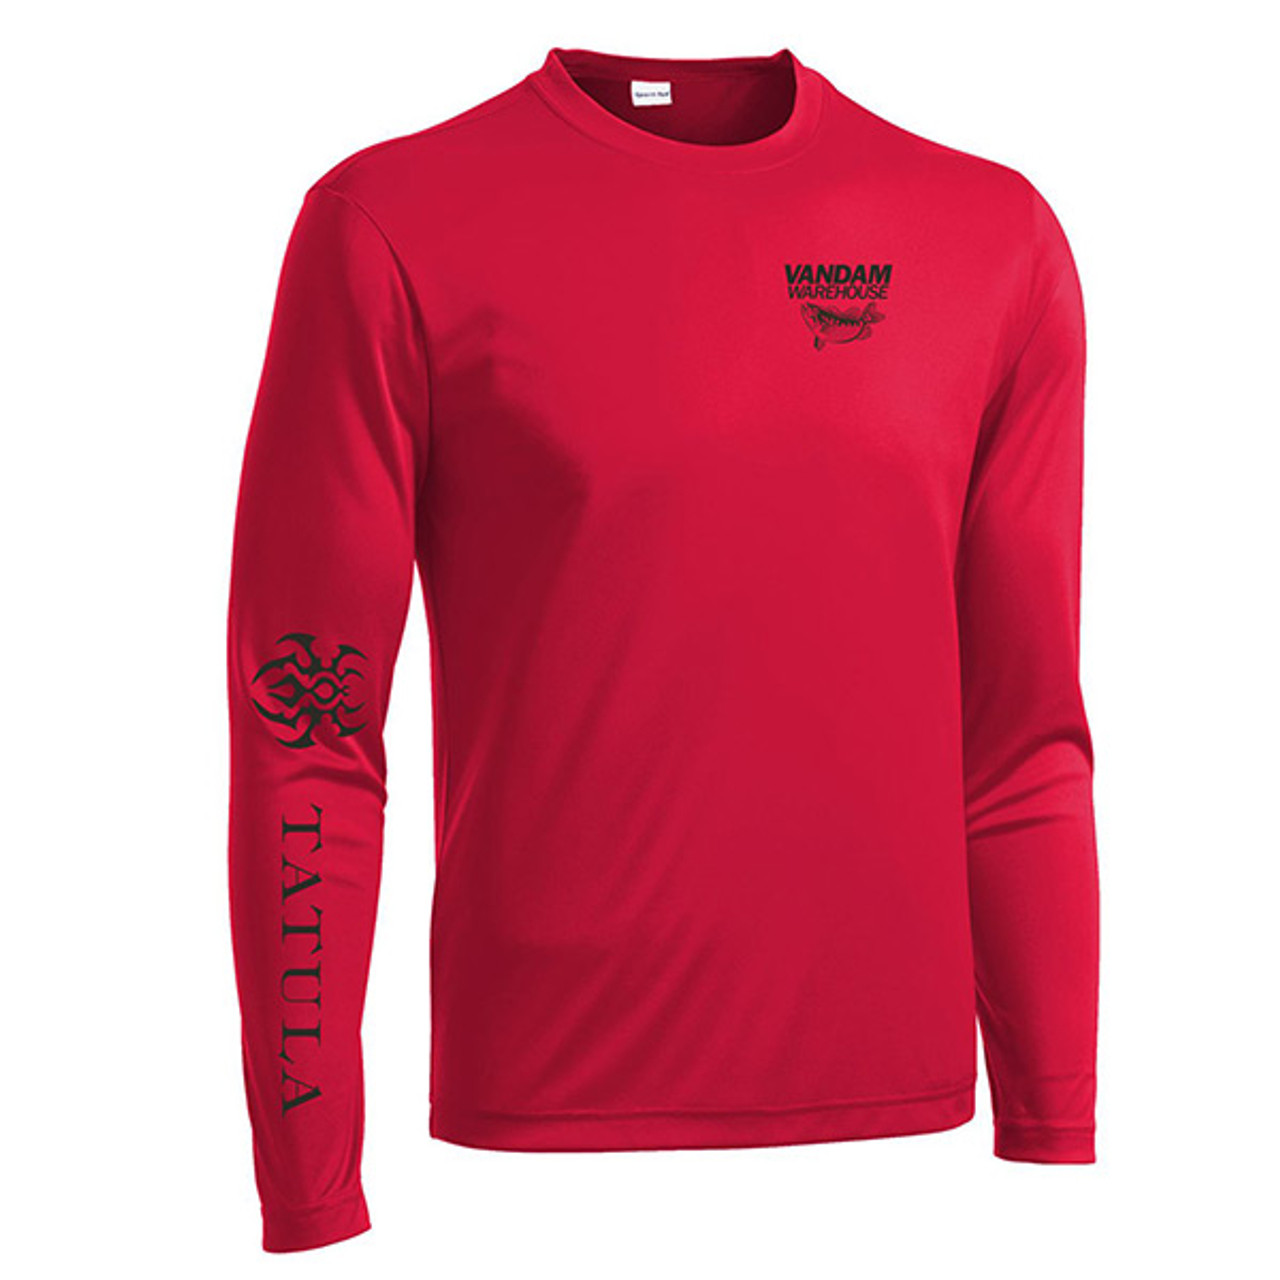 VanDam Warehouse Daiwa Tatula Performance Shirt - Red Front